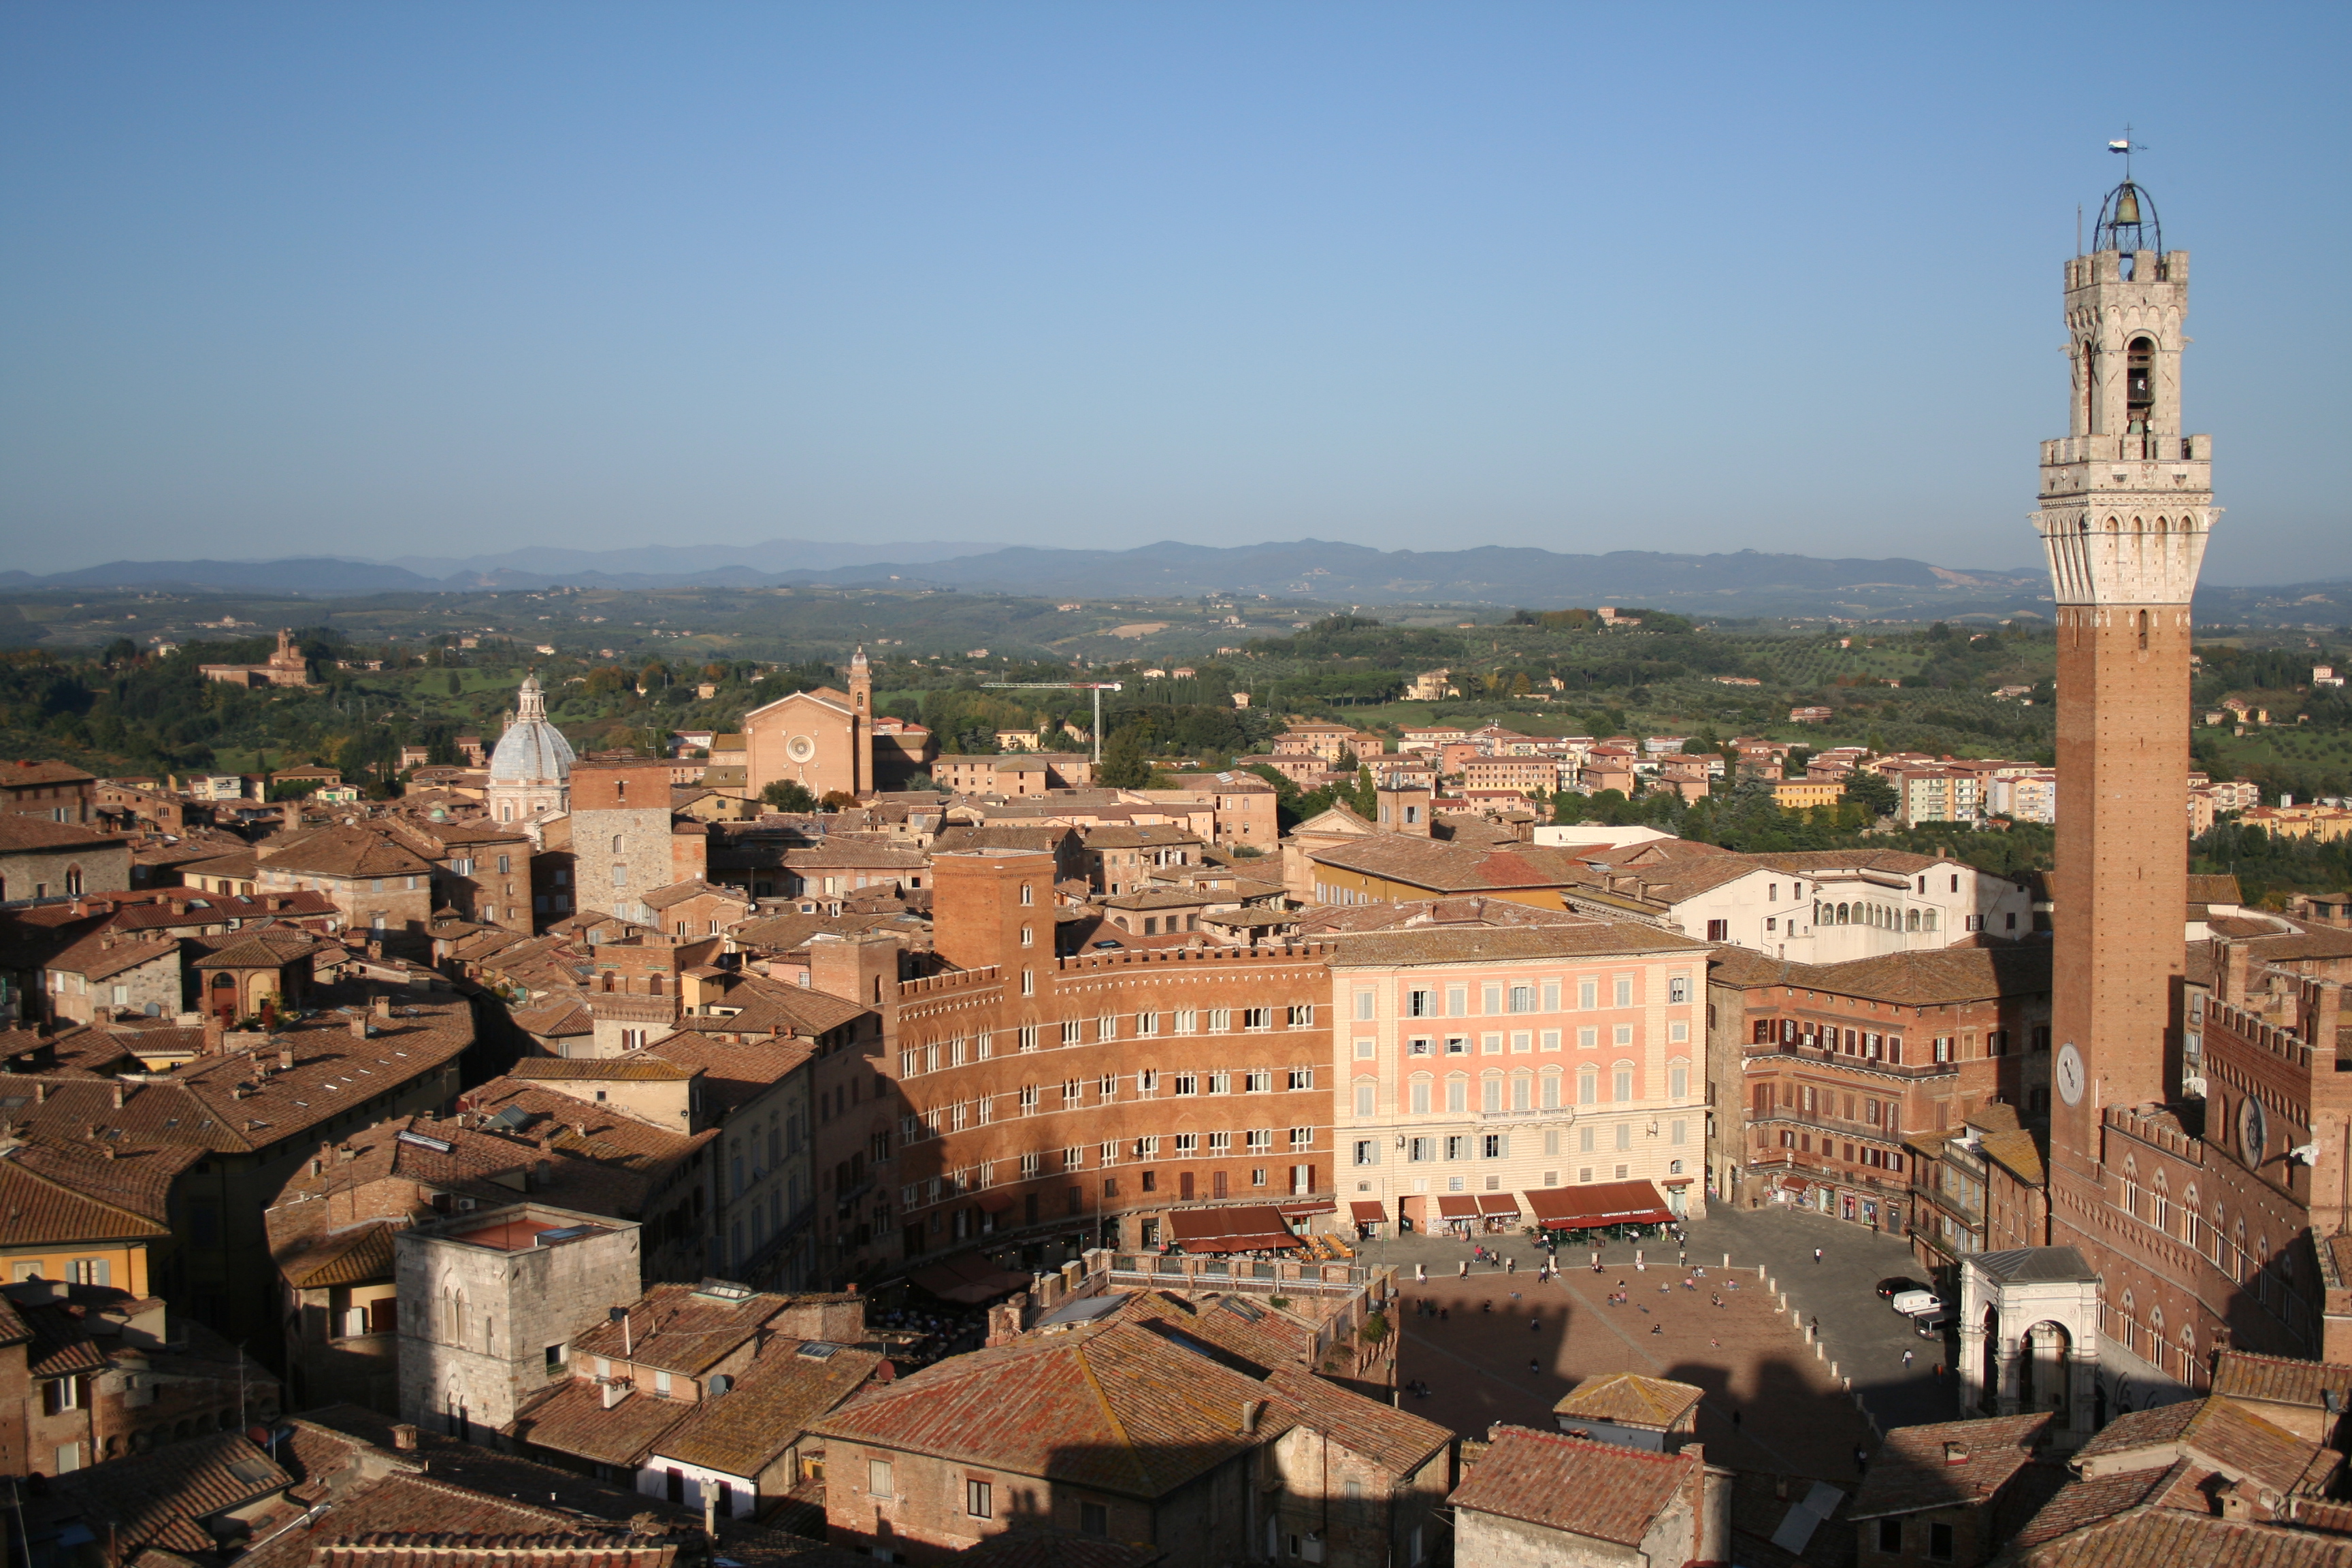 Siena Italy  city images : Piazza del Campo, Siena, Italy | Other Structures 建築物 ...